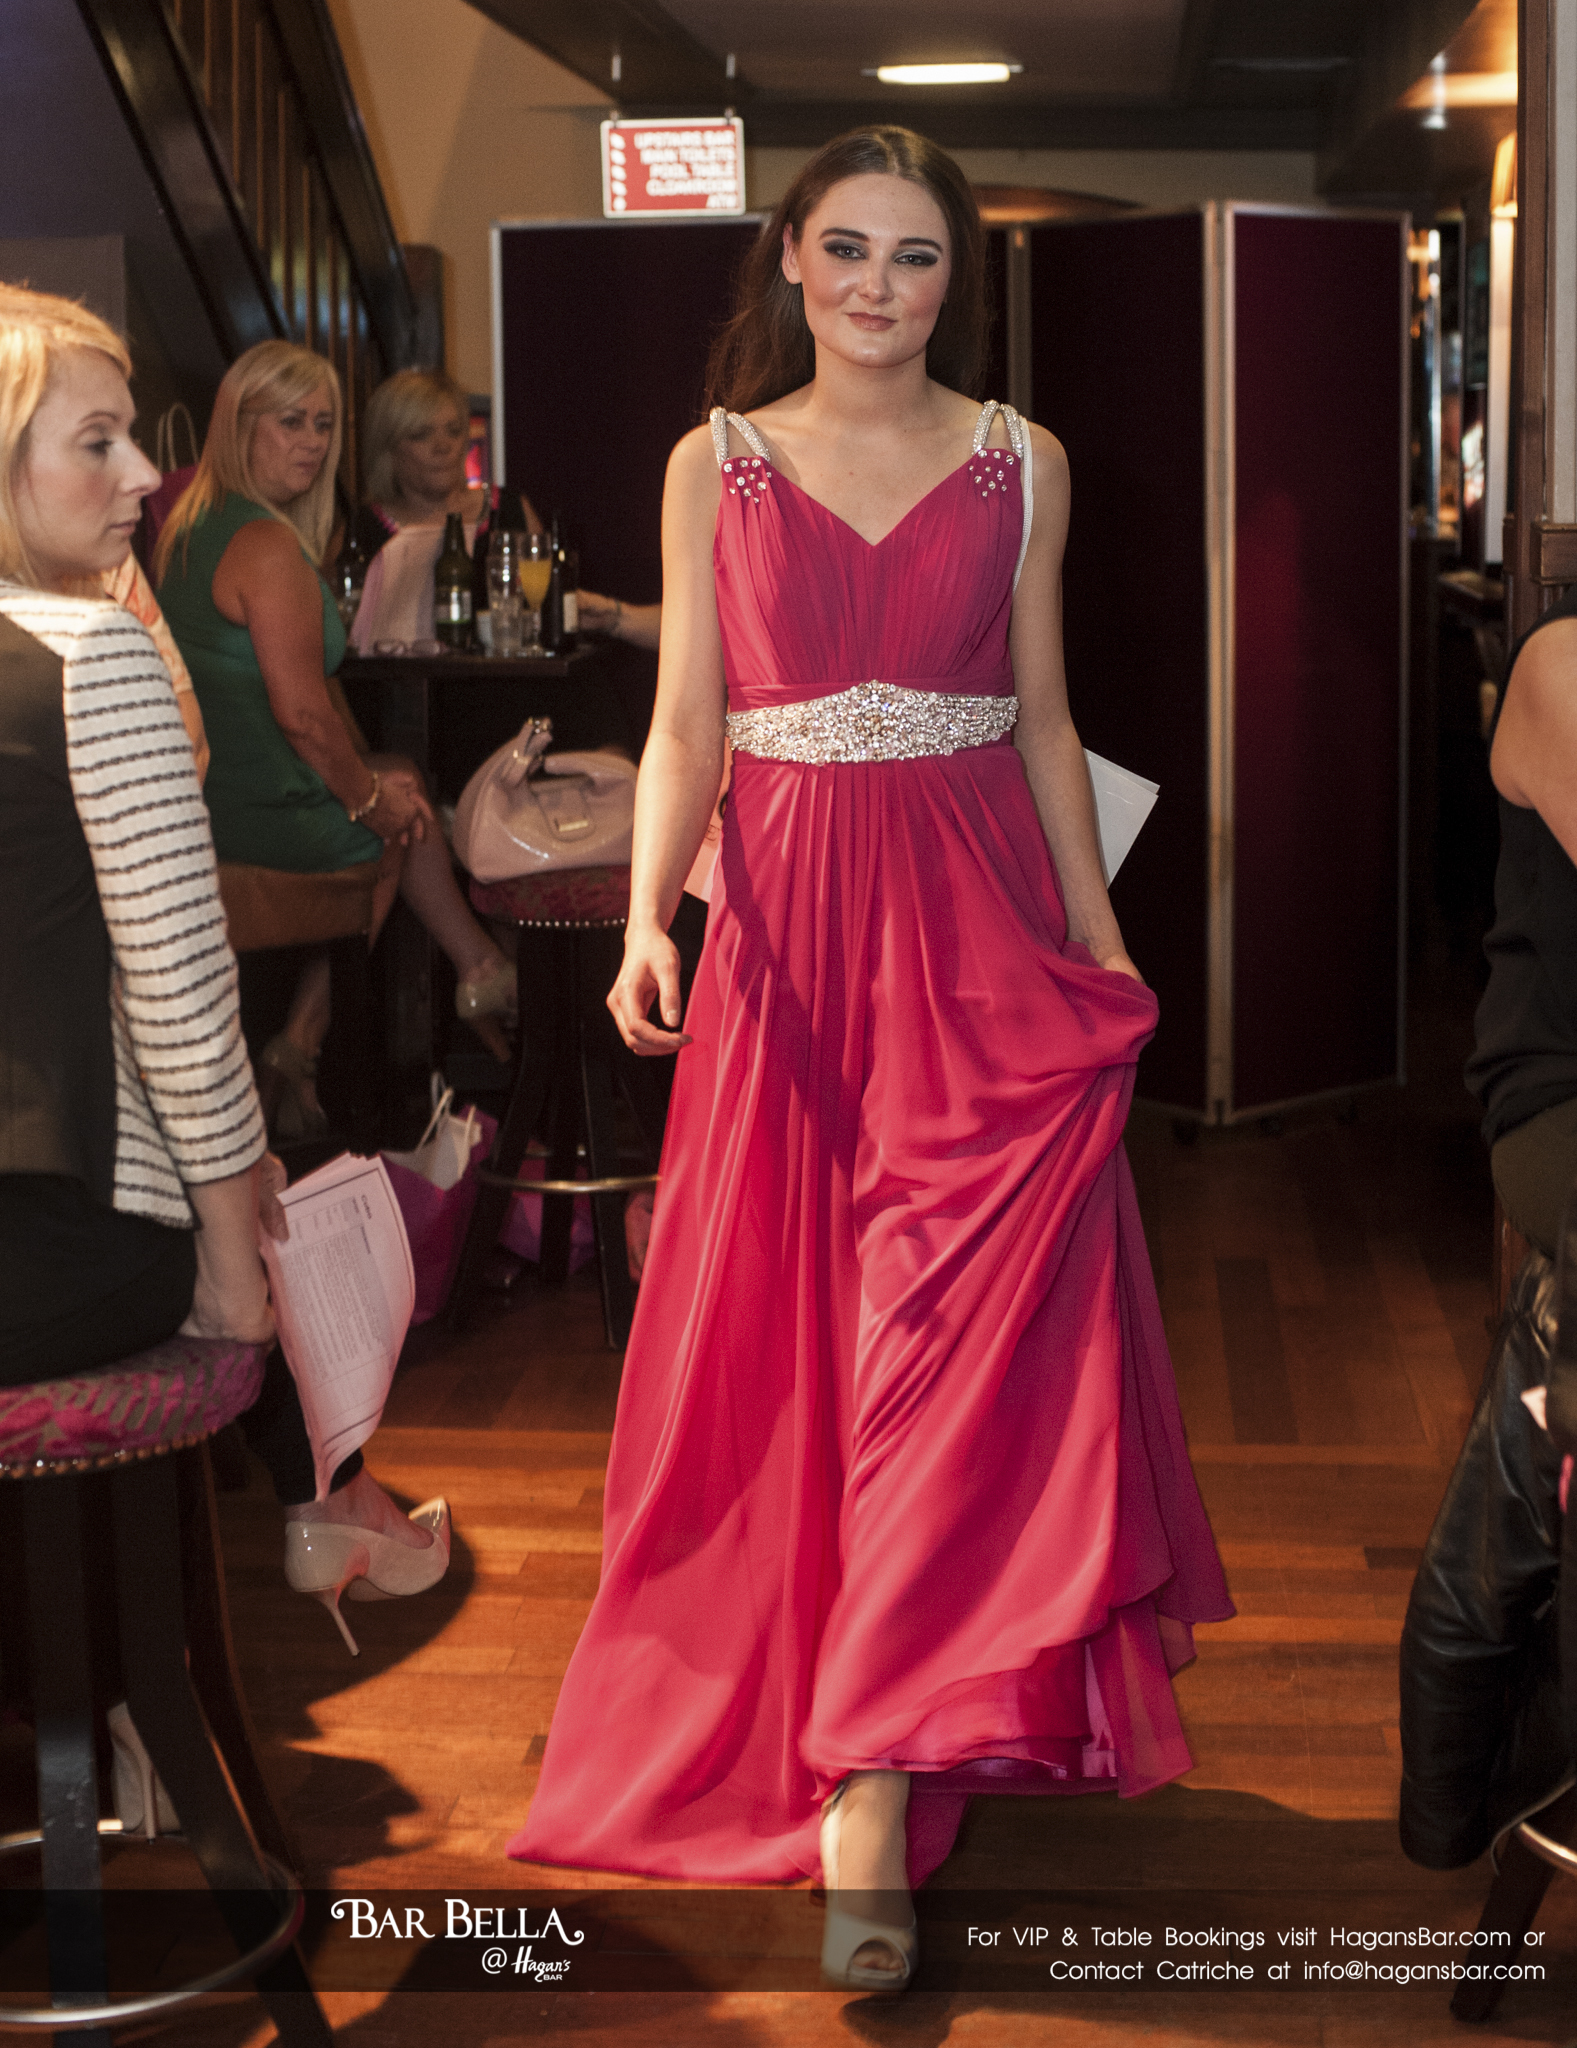 20140925-20140925-Heels on The Hill 2014-5896.jpg